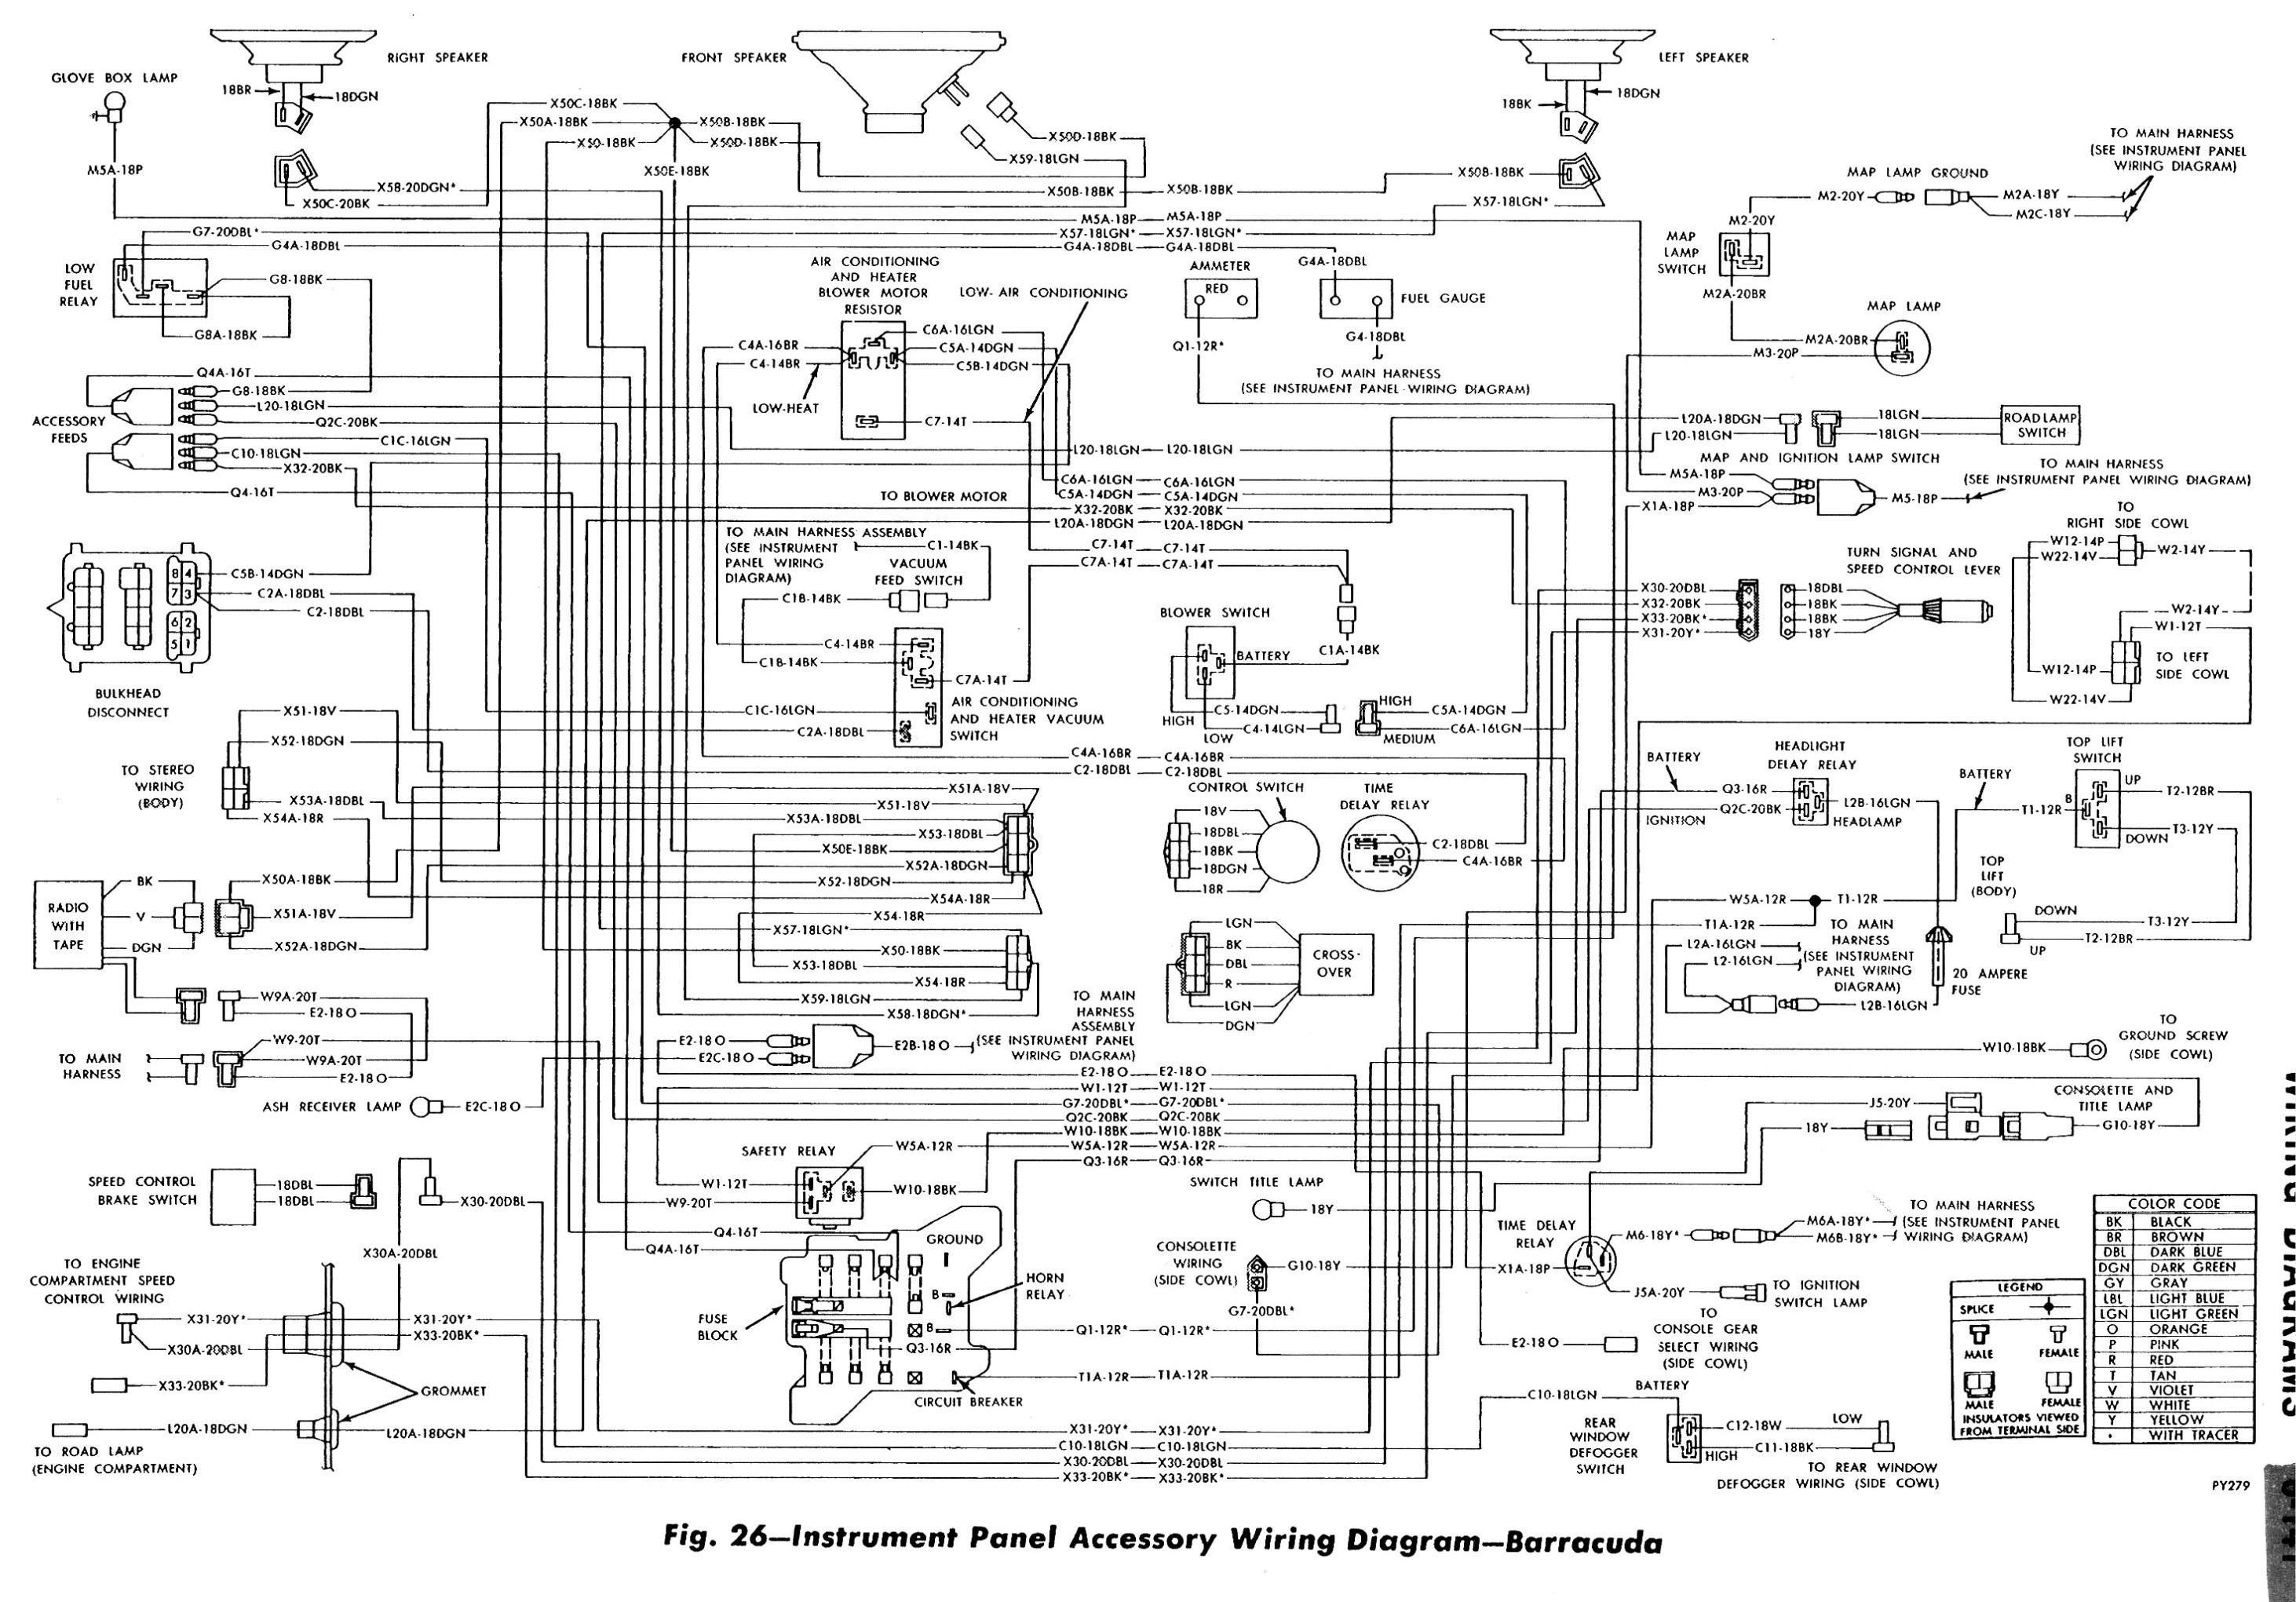 1969 Dodge Steering Diagram Wiring Schematic Wiring Diagrams Name Name Miglioribanche It